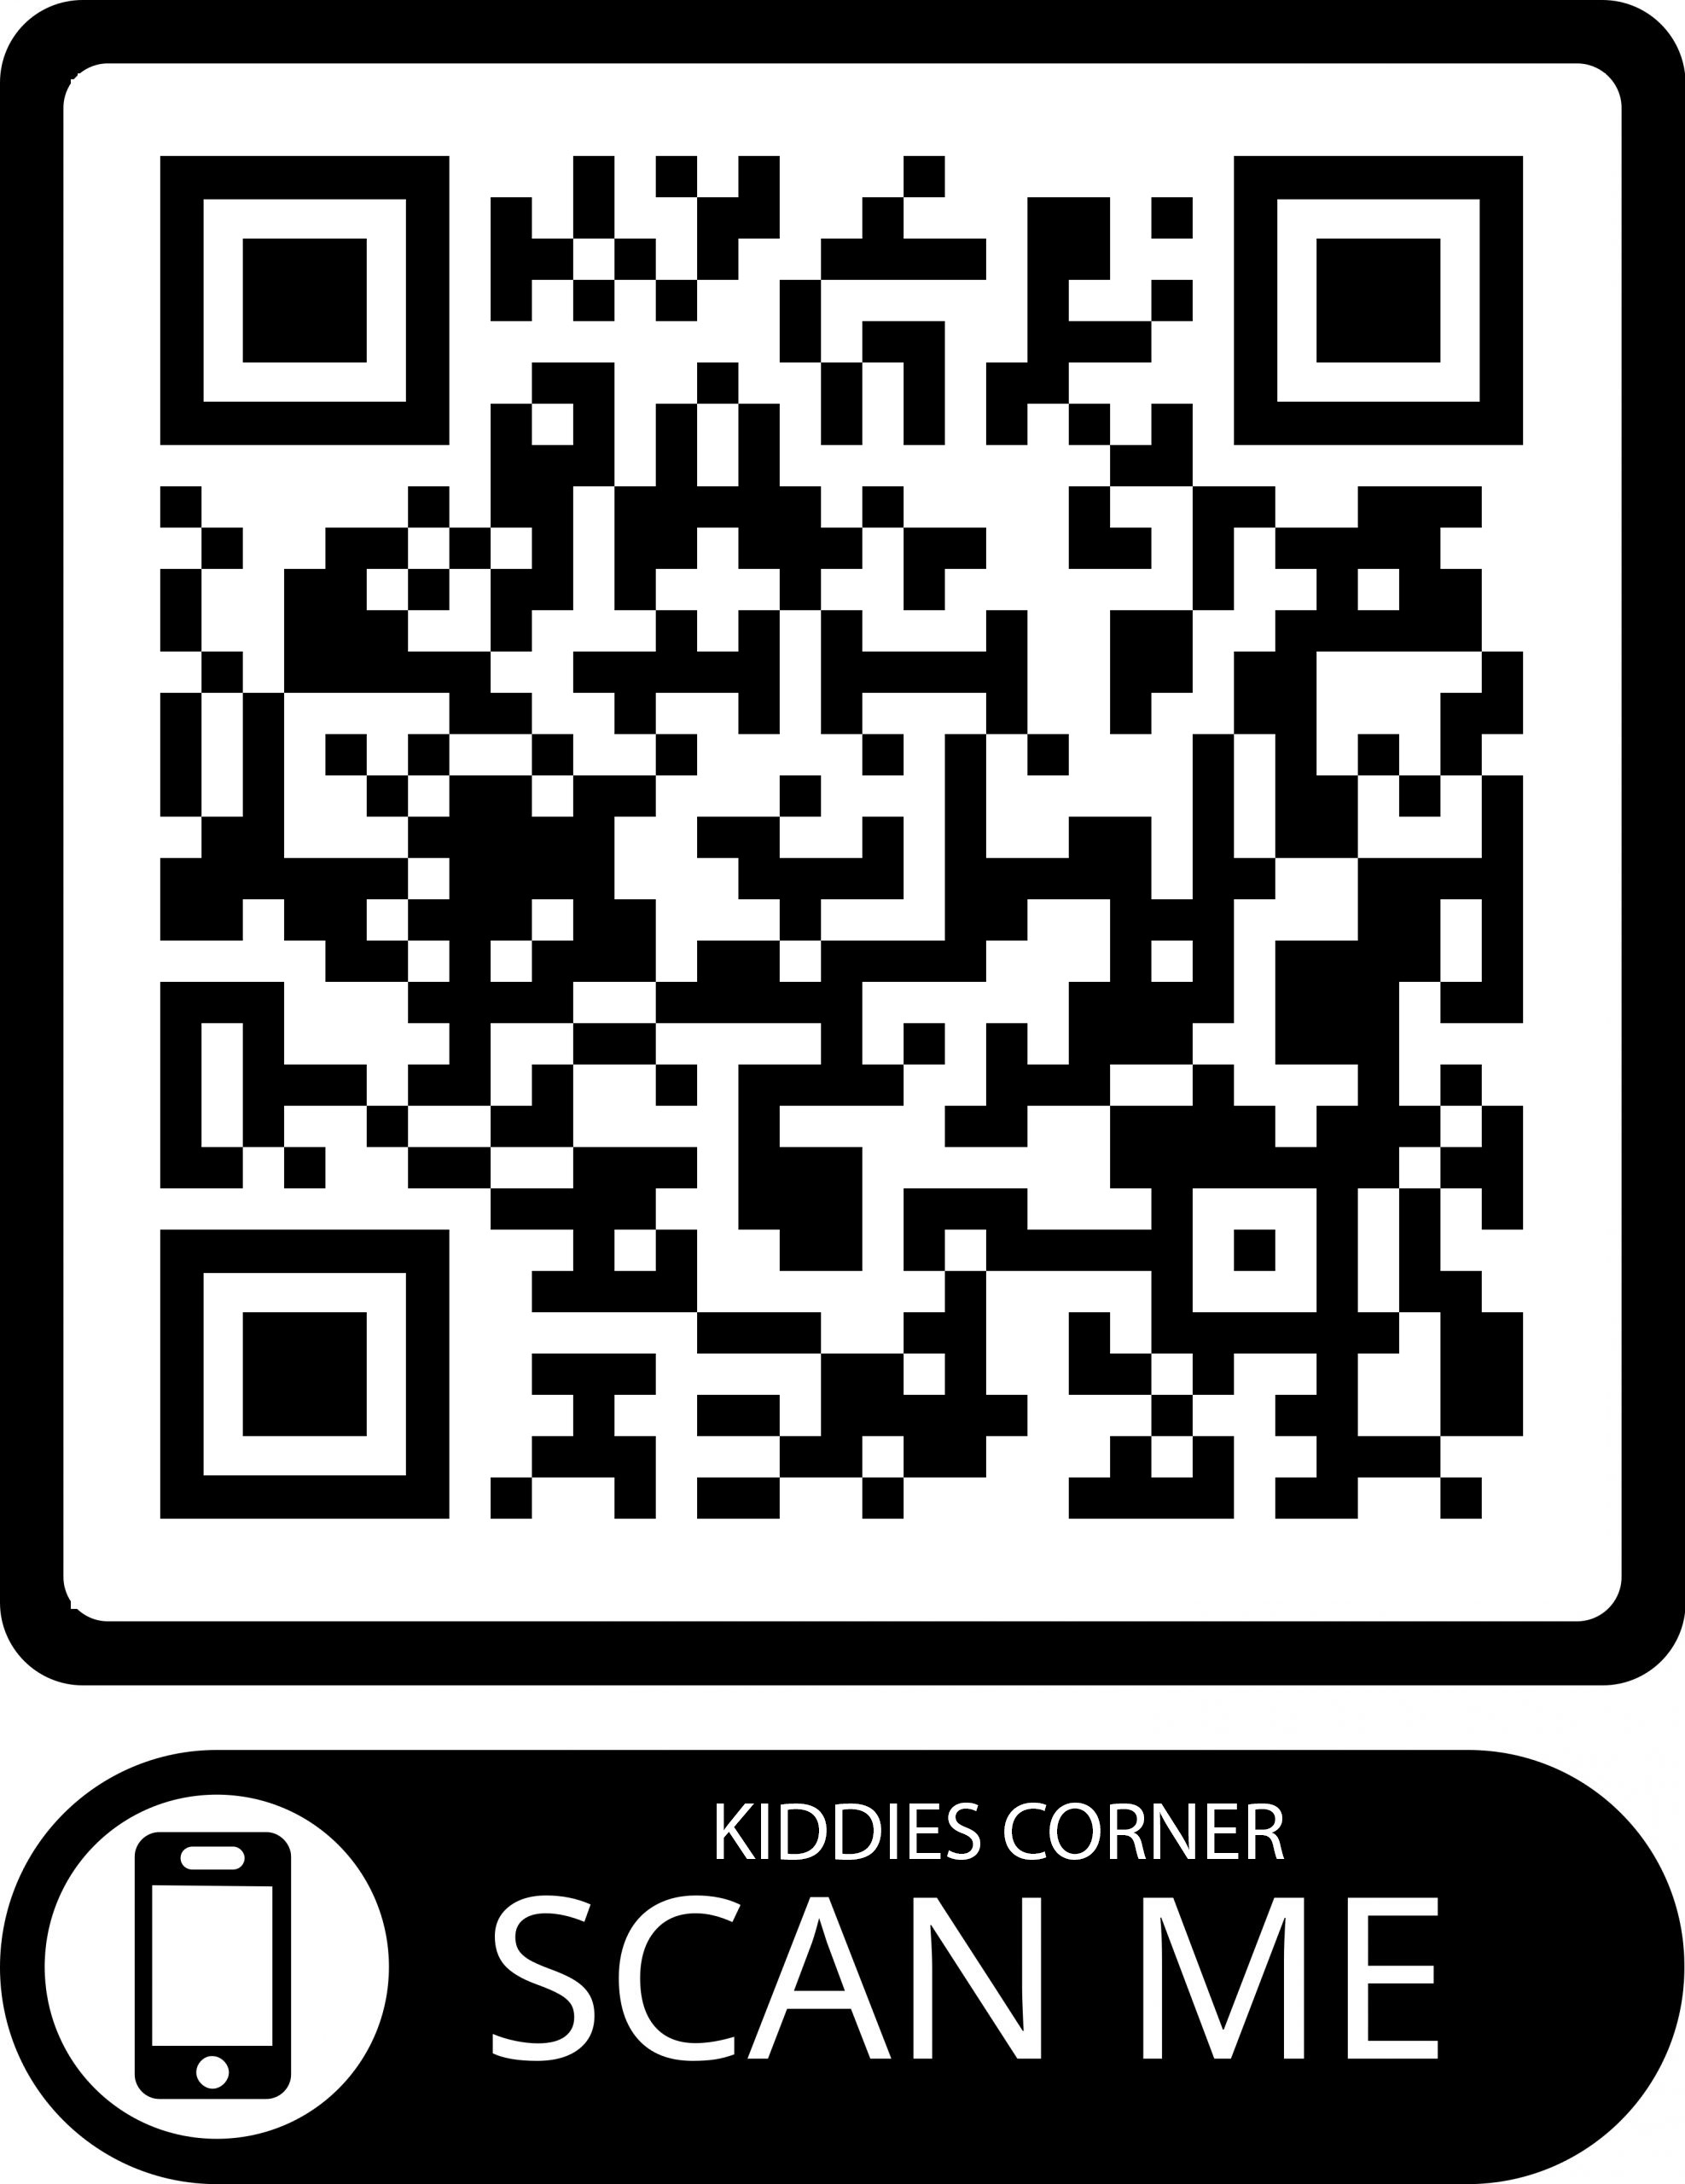 QR-Code-Register-kiddies-corner